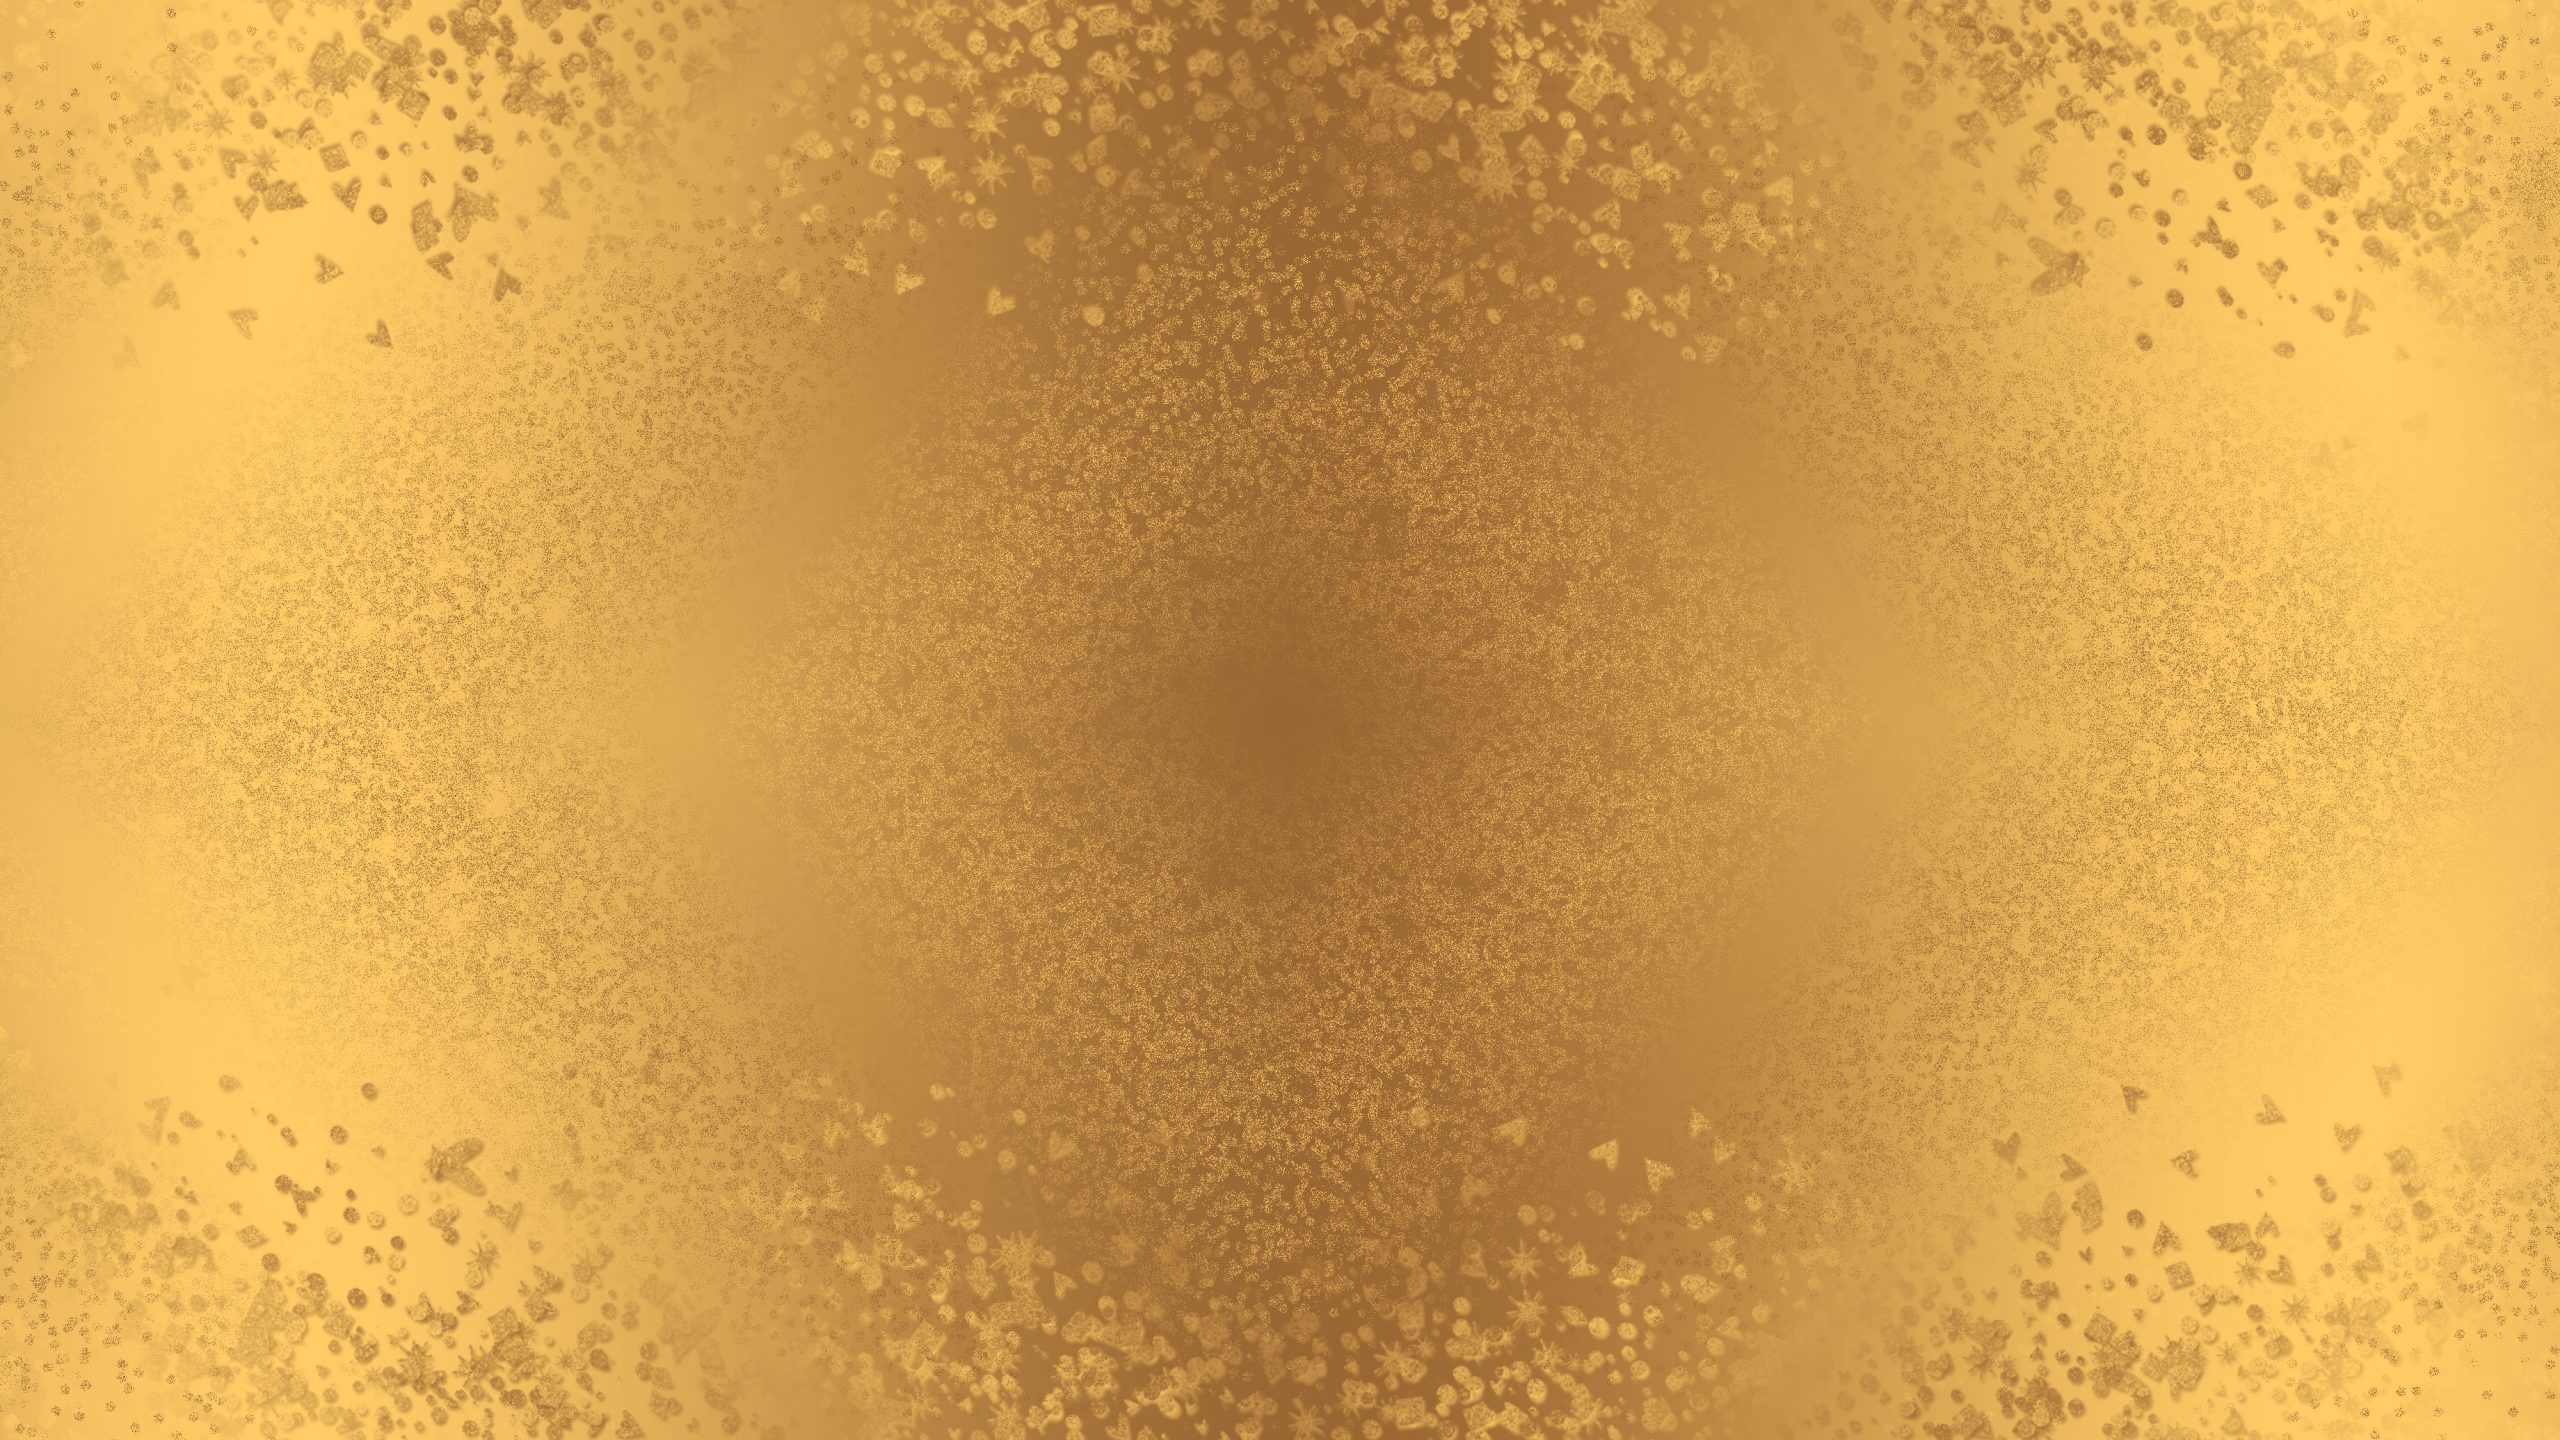 Golden and amber color wallpaper